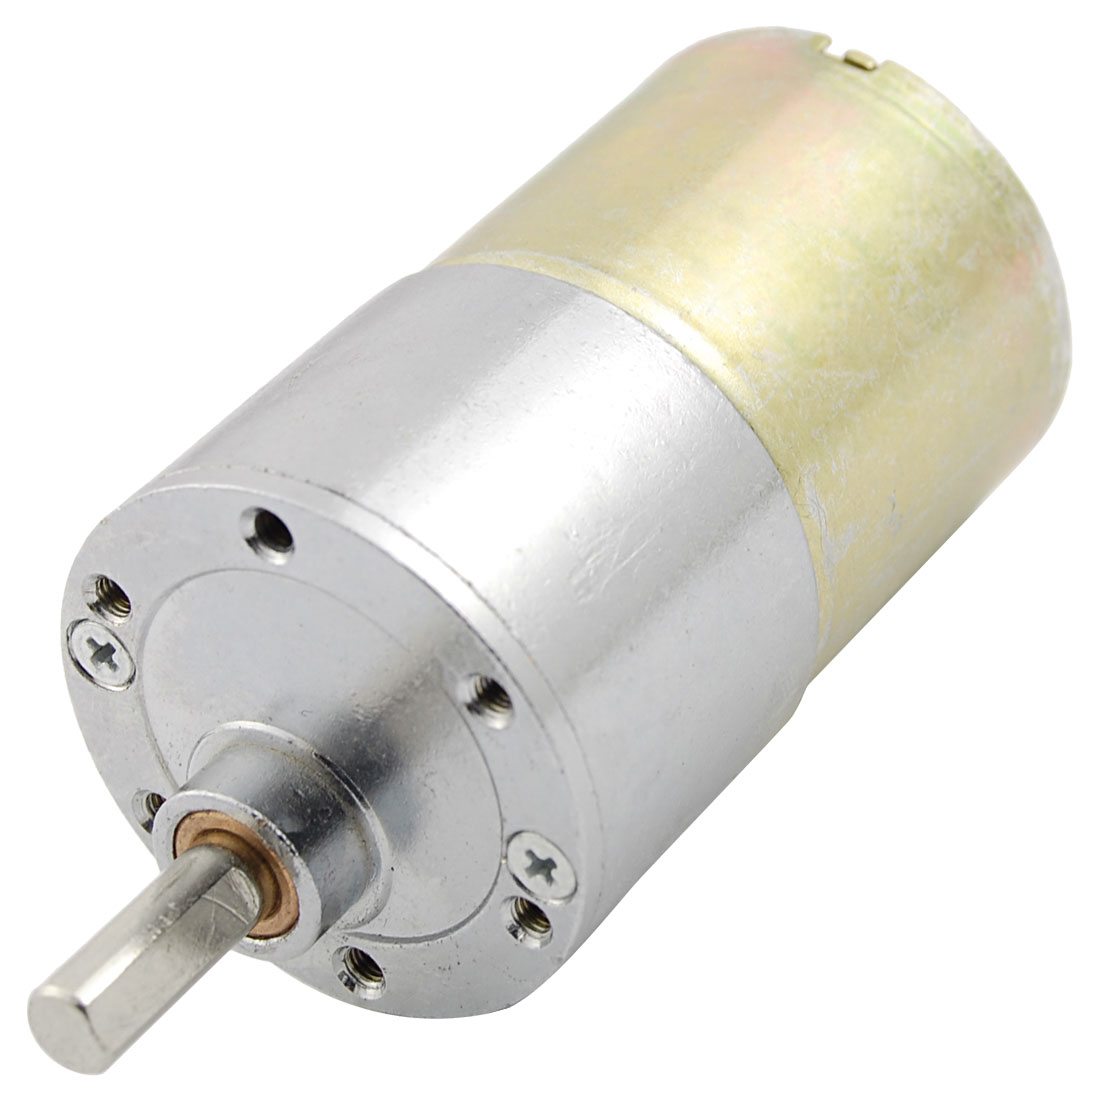 4-32kg-cm-Torque-6mm-Shaft-37mm-Dia-Magnetic-DC-Geared-Motor-50RPM-130mA-12V